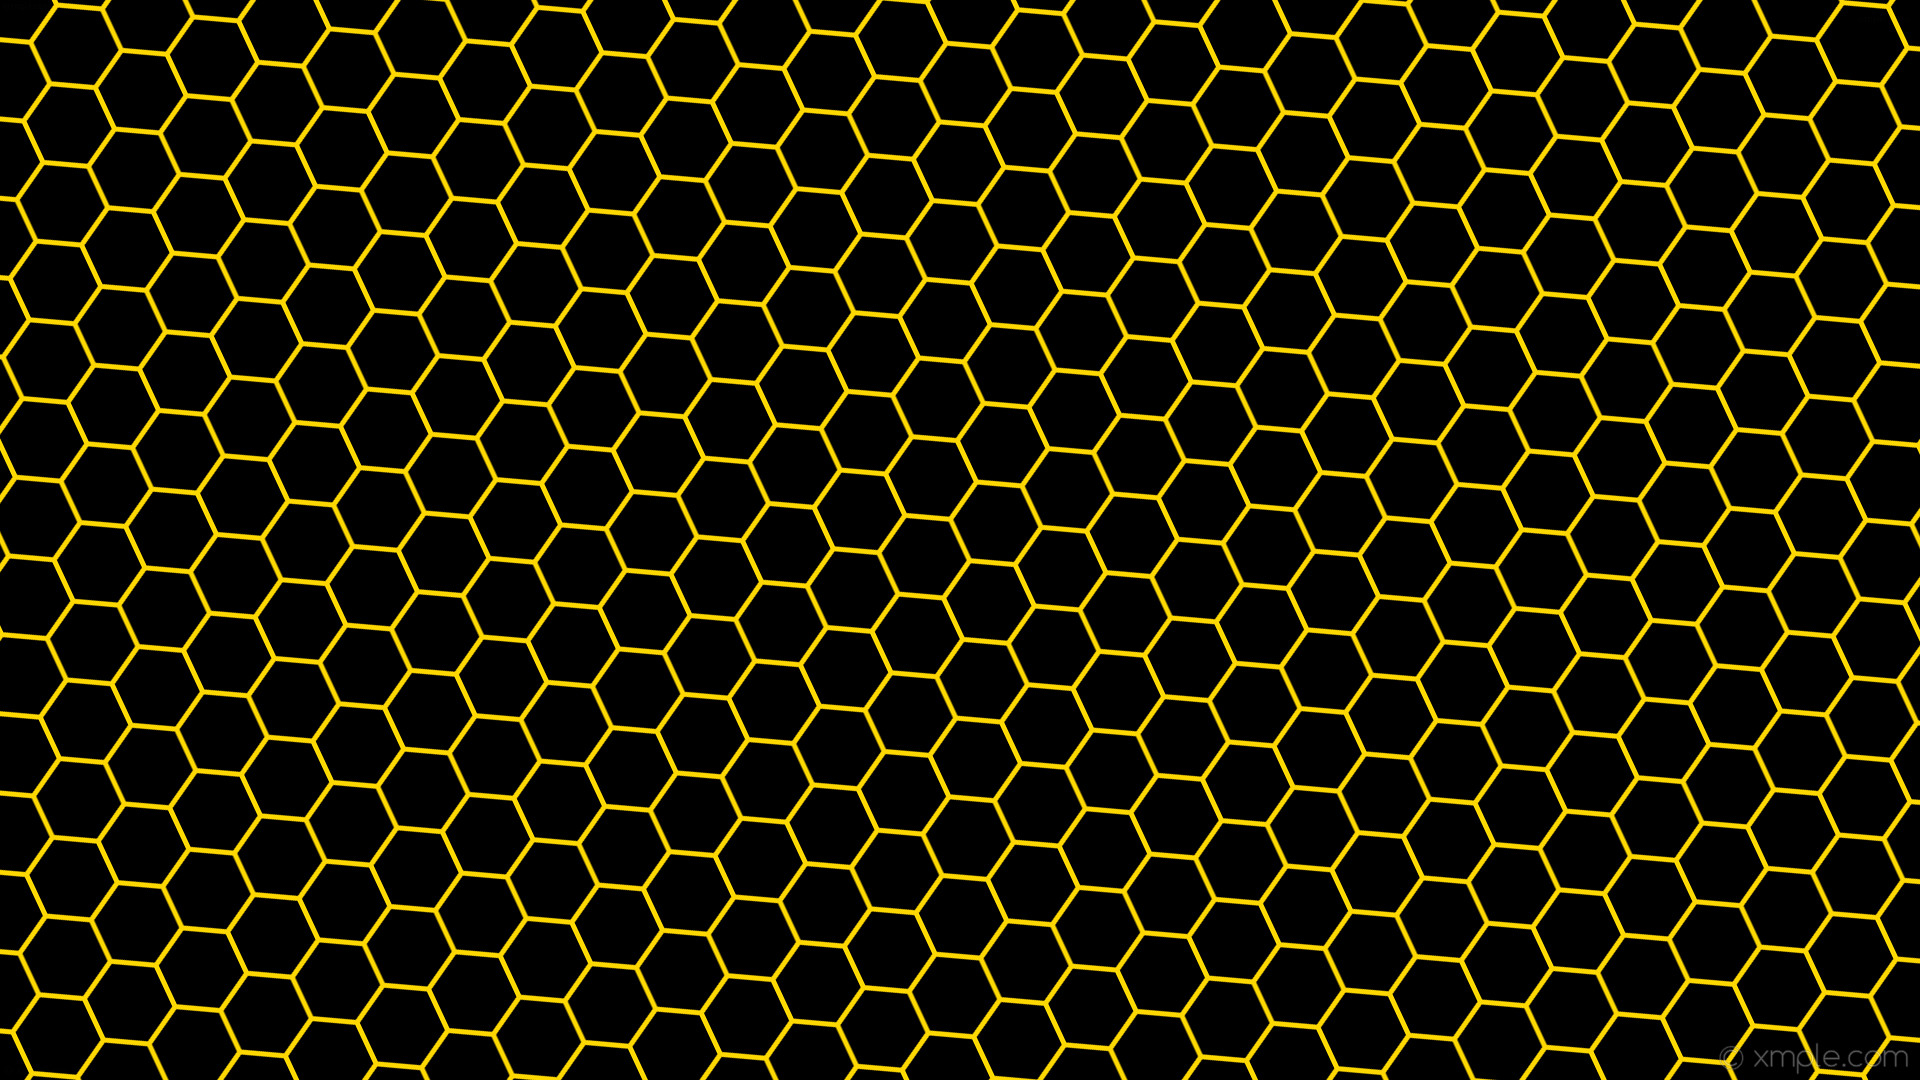 Black and Yellow Wallpapers ·①